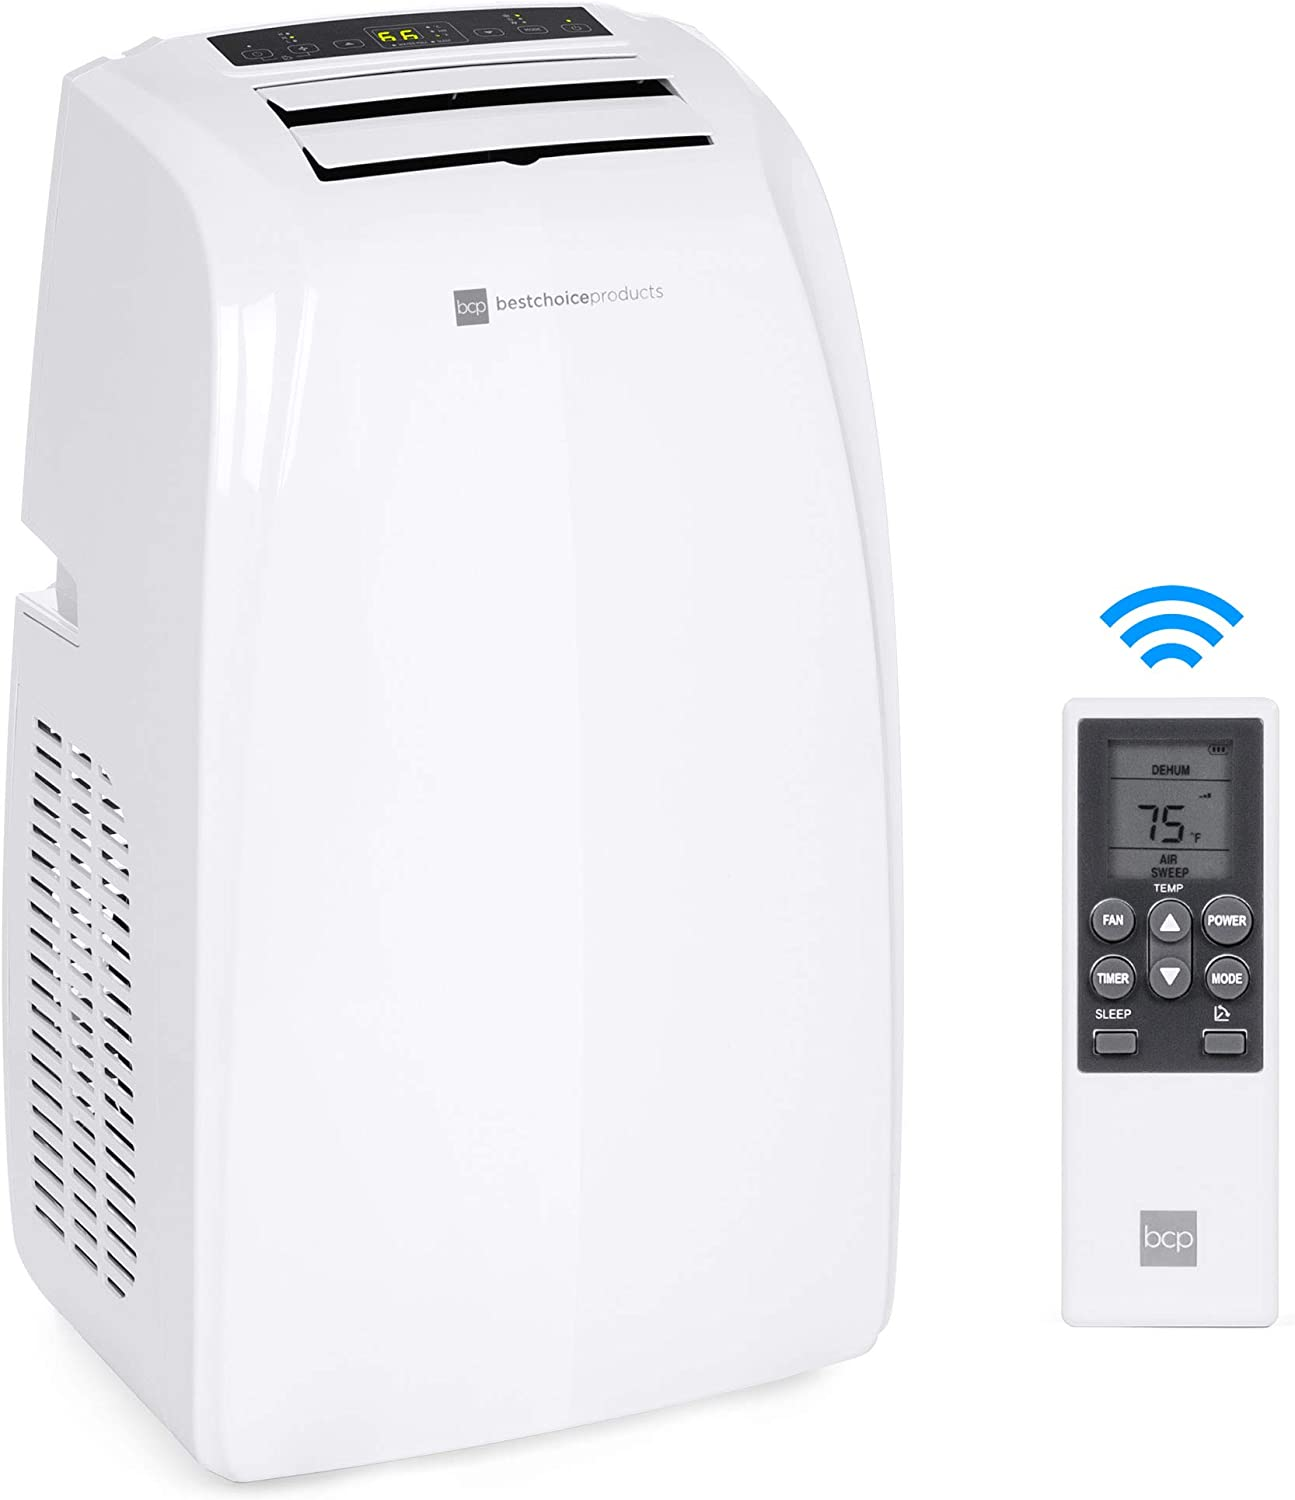 Best Choice Products 14,000 BTU Portable Air Conditioner ...